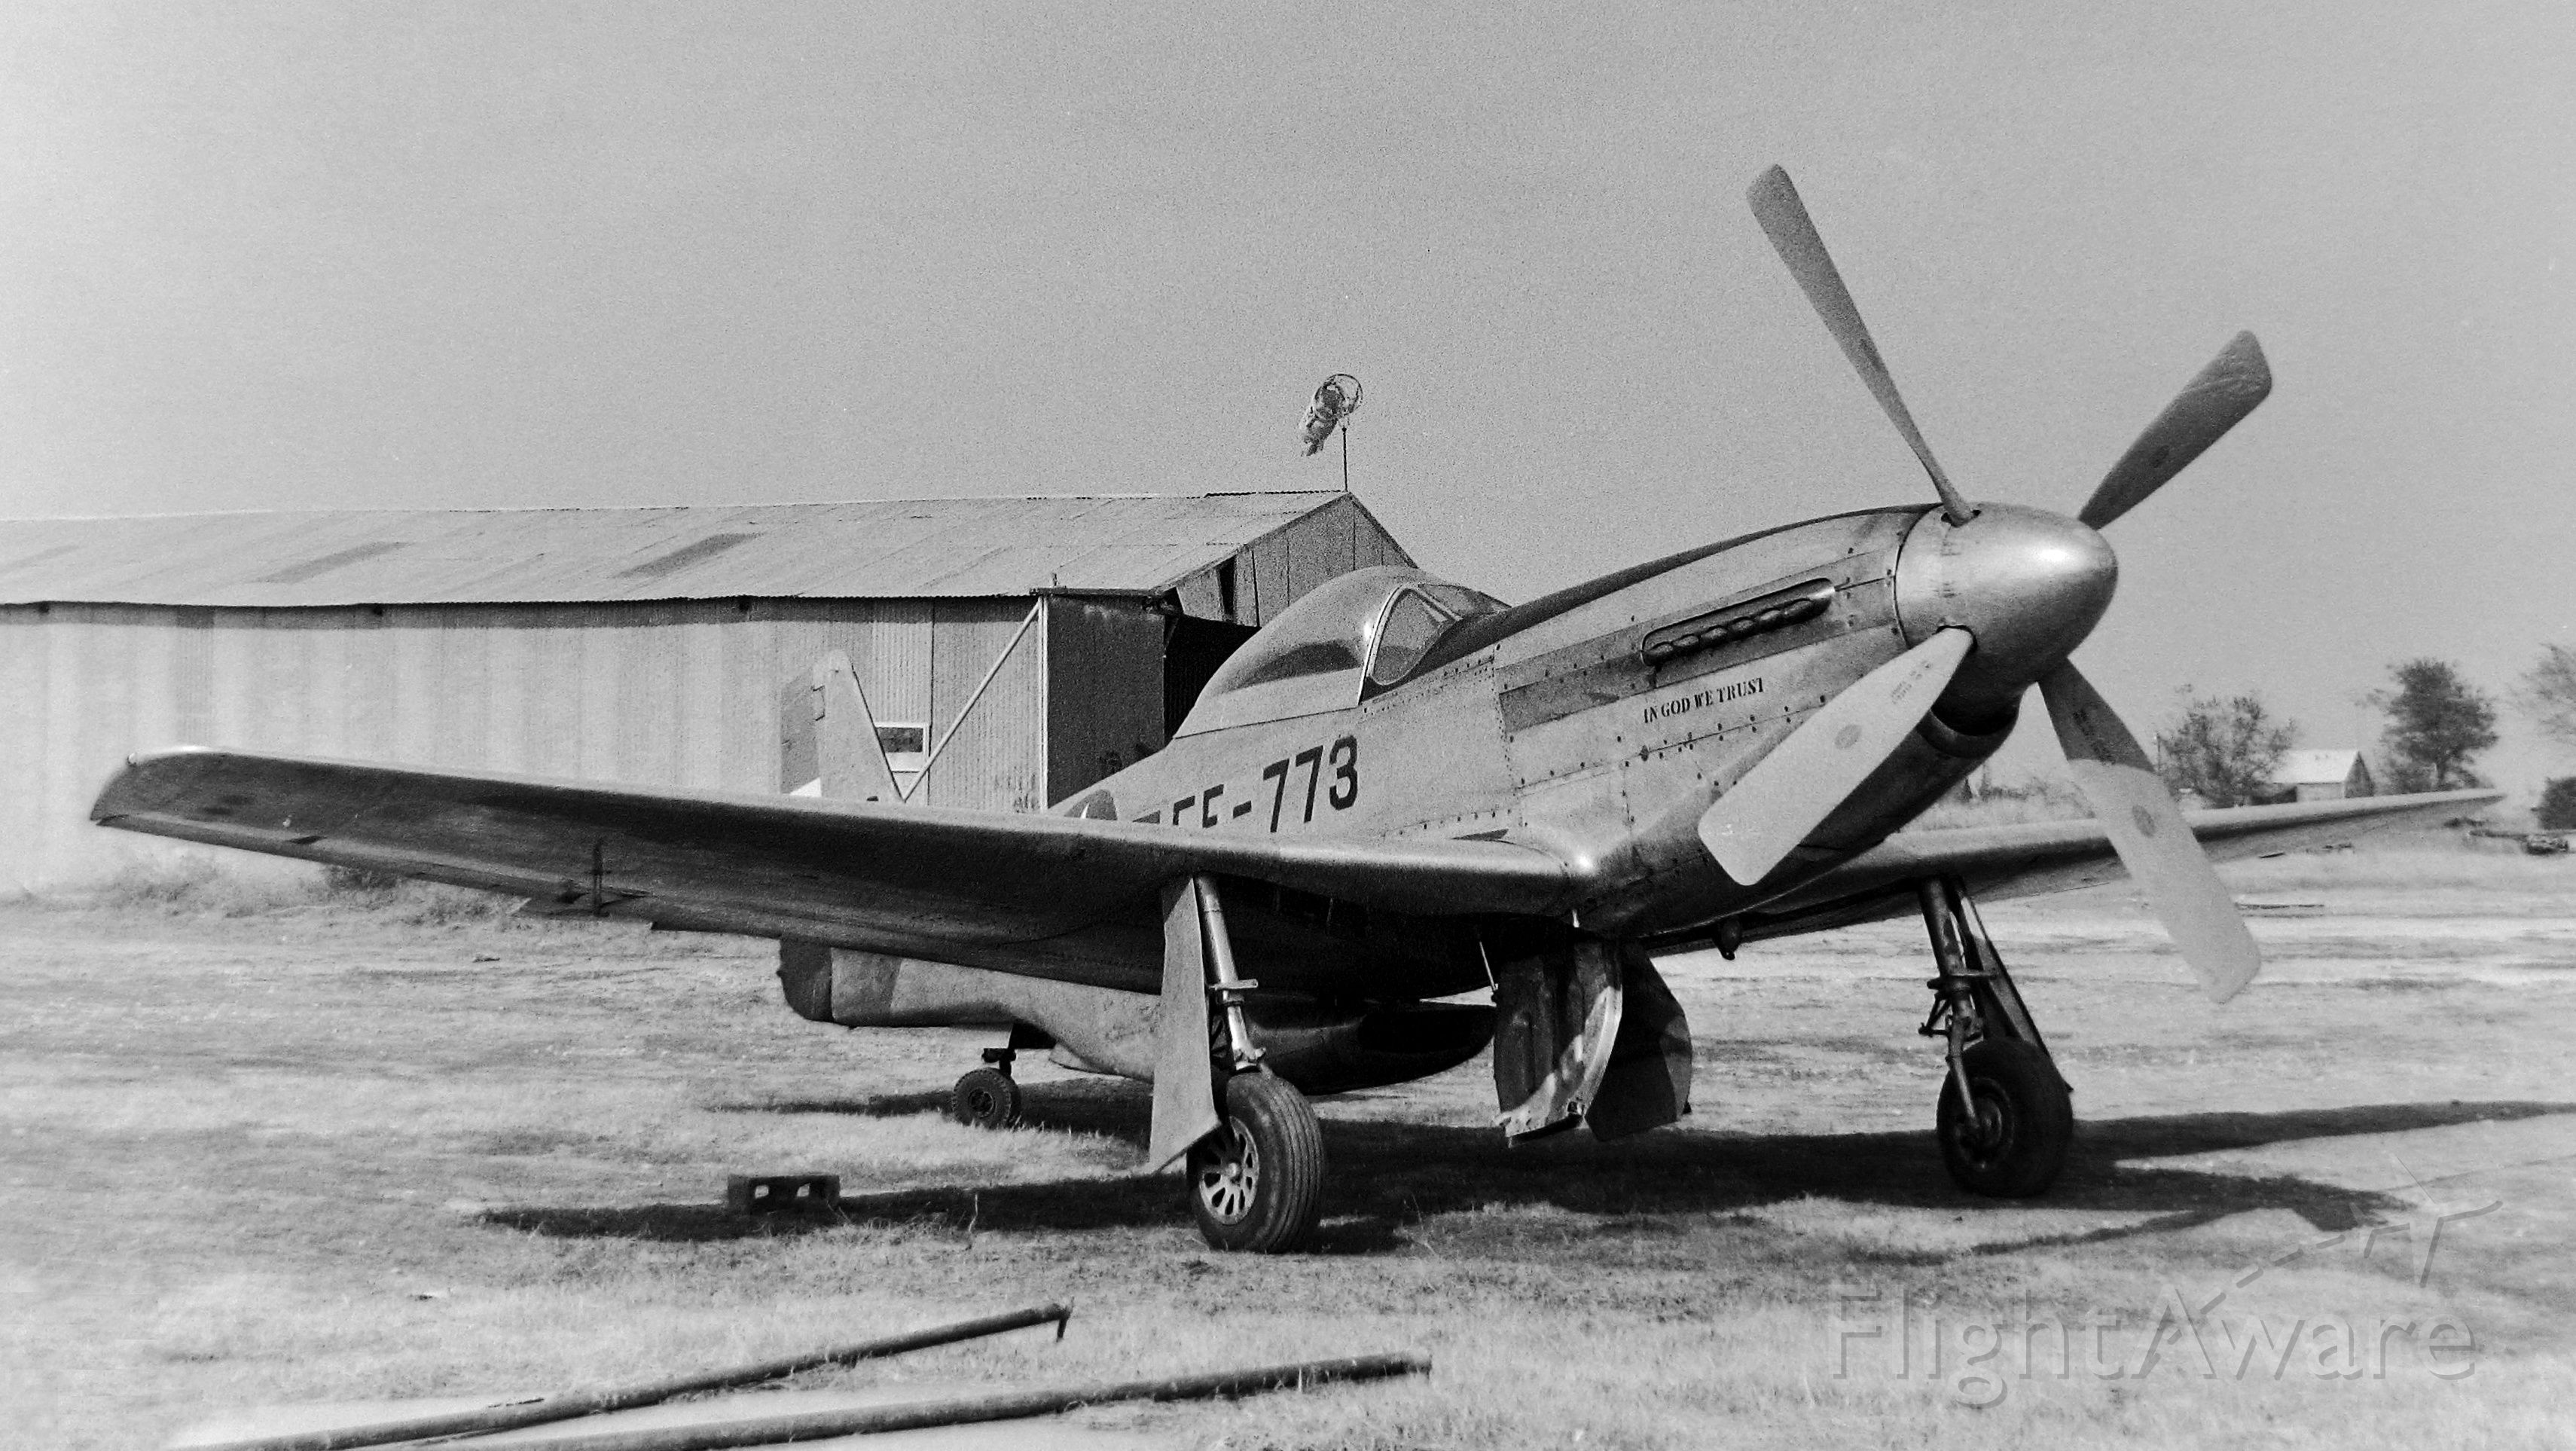 """North American P-51 Mustang — - Taken at the old Flying Tiger Field at Toco, Texas in 1973. I thought at one time I had some info on """"In God We Trust"""" but can't find anything about it now."""